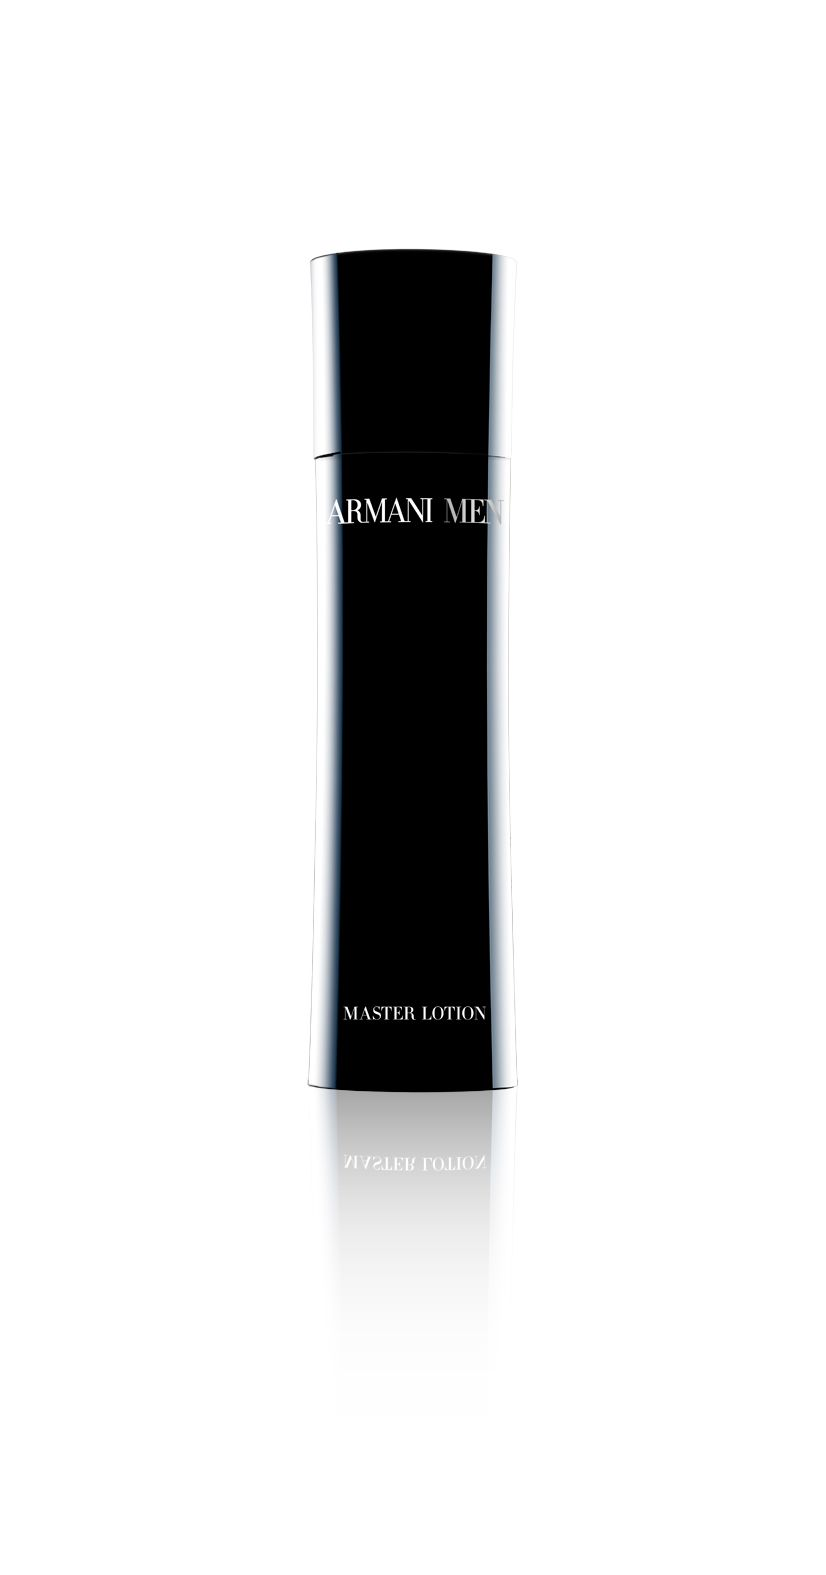 Armani Men Master Lotion